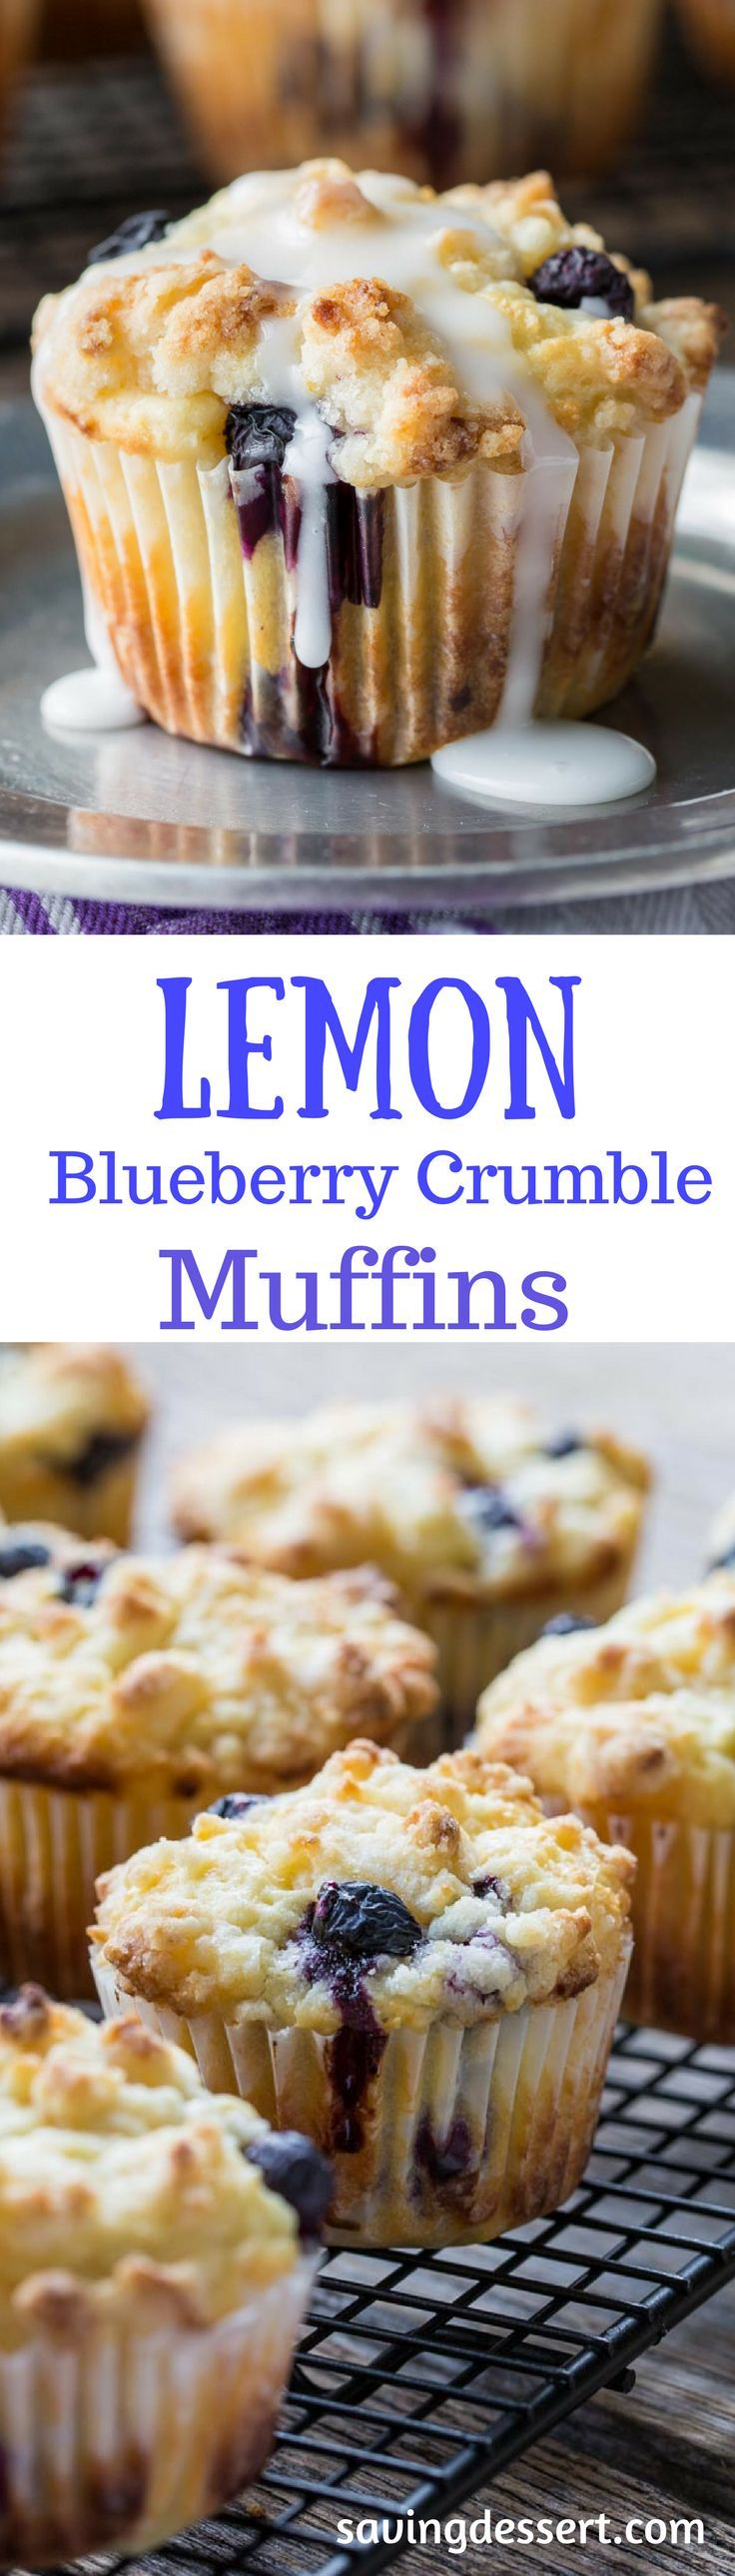 Lemon Blueberry Muffins with a Lemon Crumble Topping ~ Plump, ripe blueberries and tart lemon juice are the stars in these wonderfully moist, sour cream muffins. Not overly sweet, these muffins are terrific with or without the bright lemon glaze. www.savi